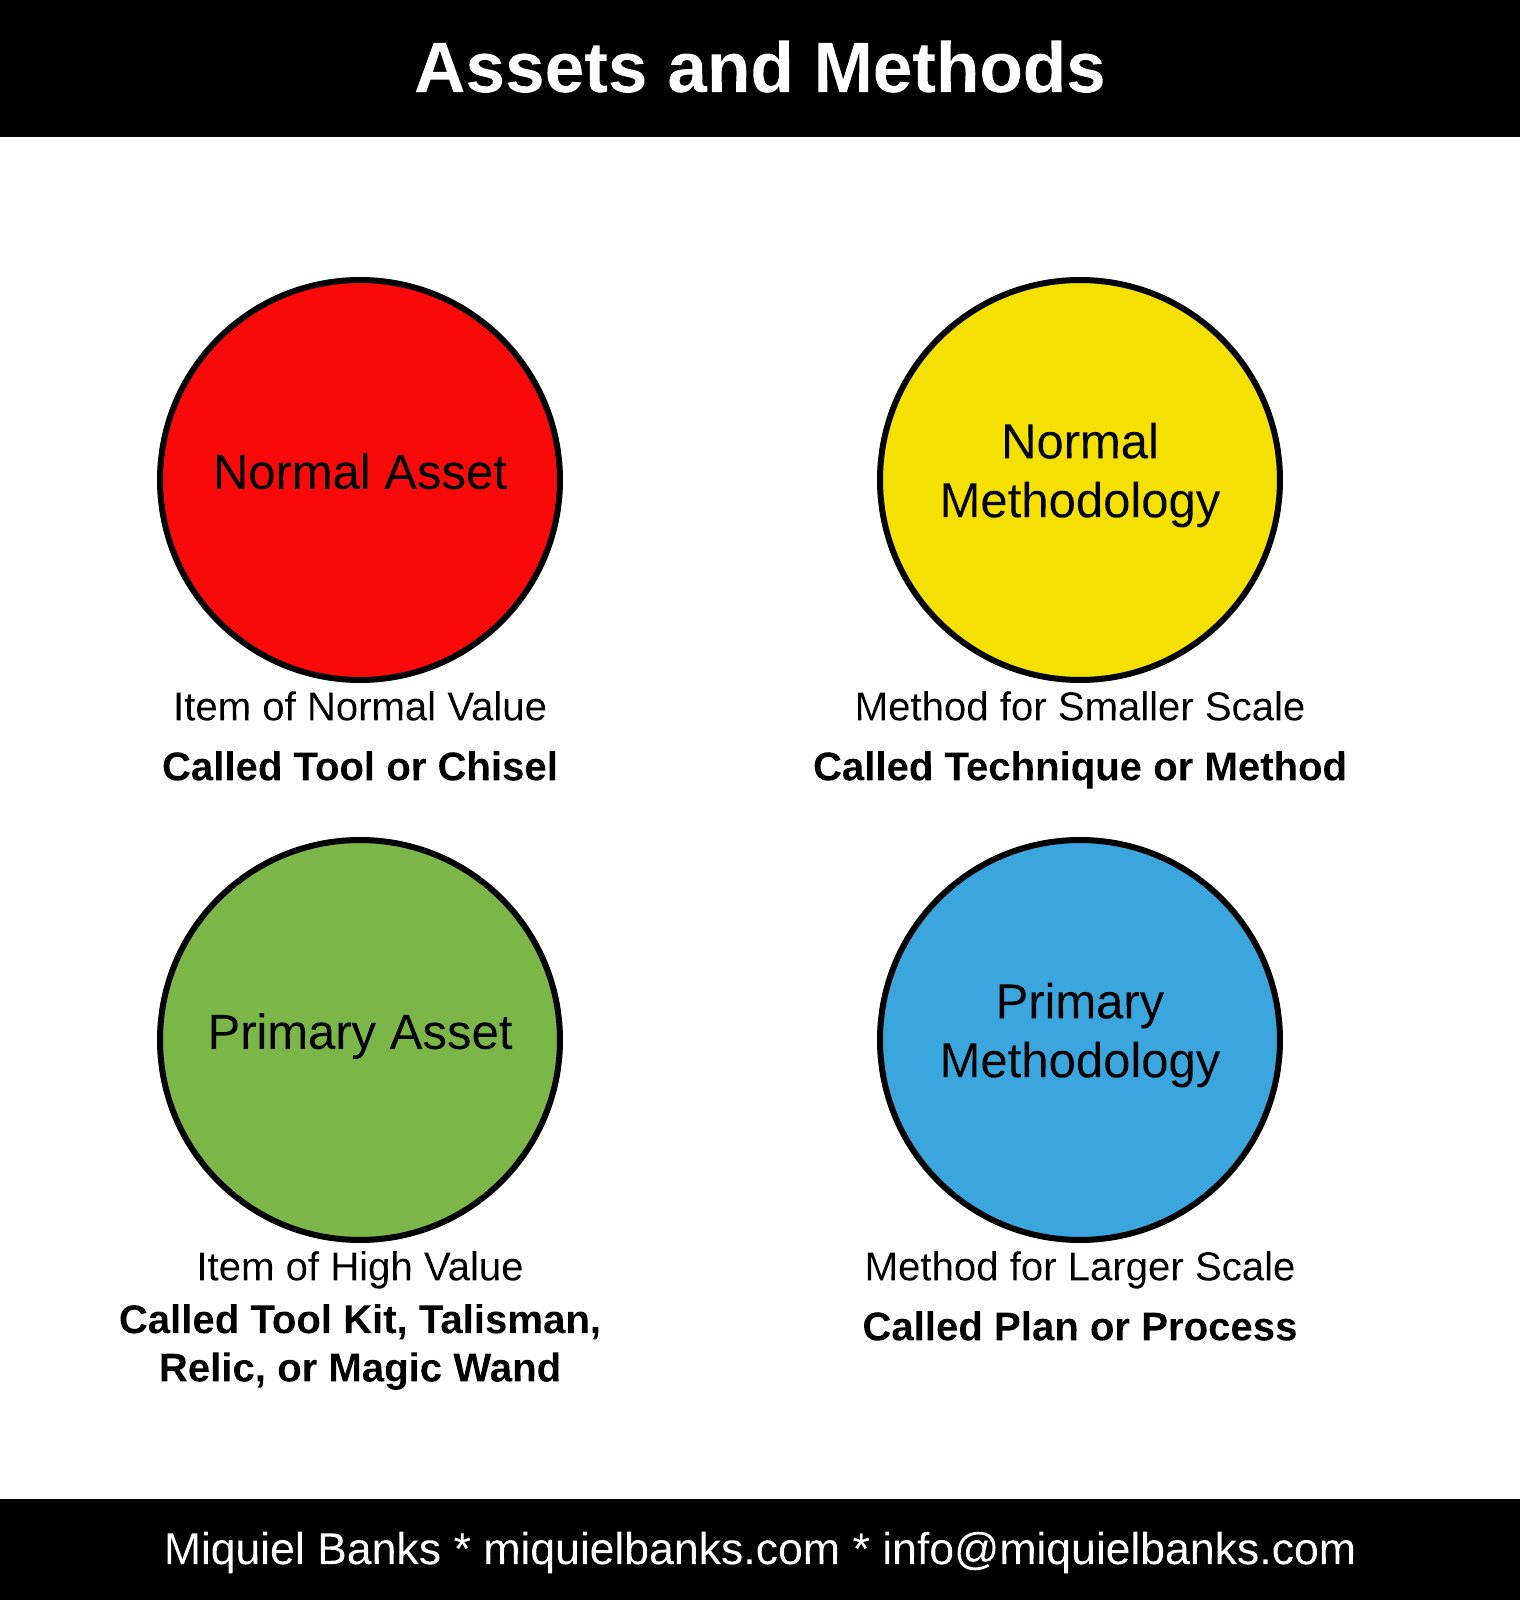 Story Assets and Methods